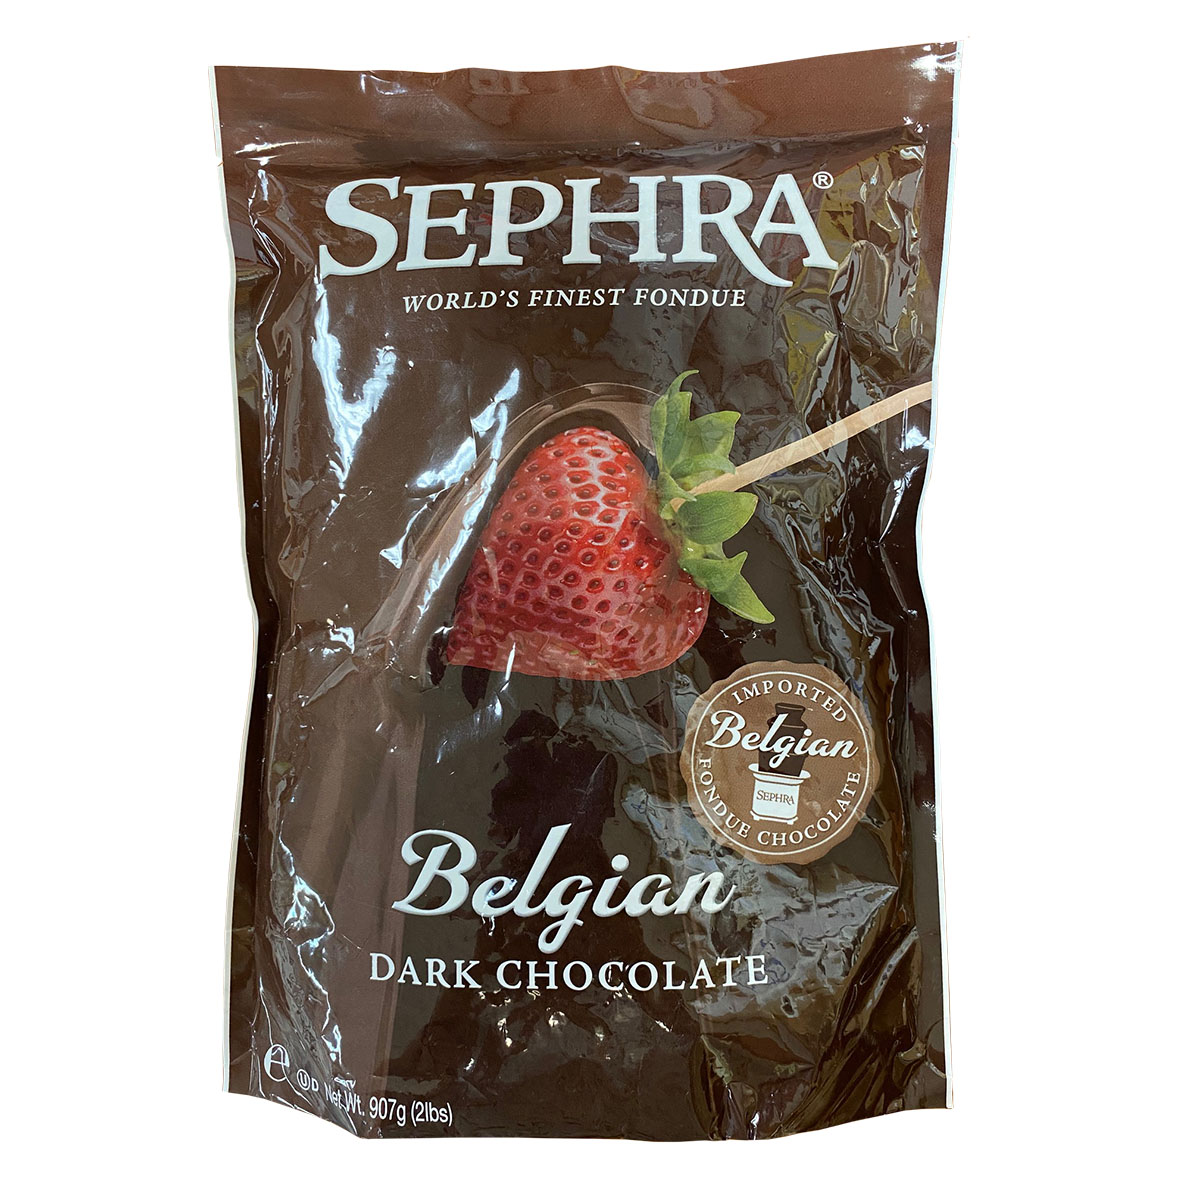 Additional Bags Of Dark Chocolate Sephra 2 Pounds